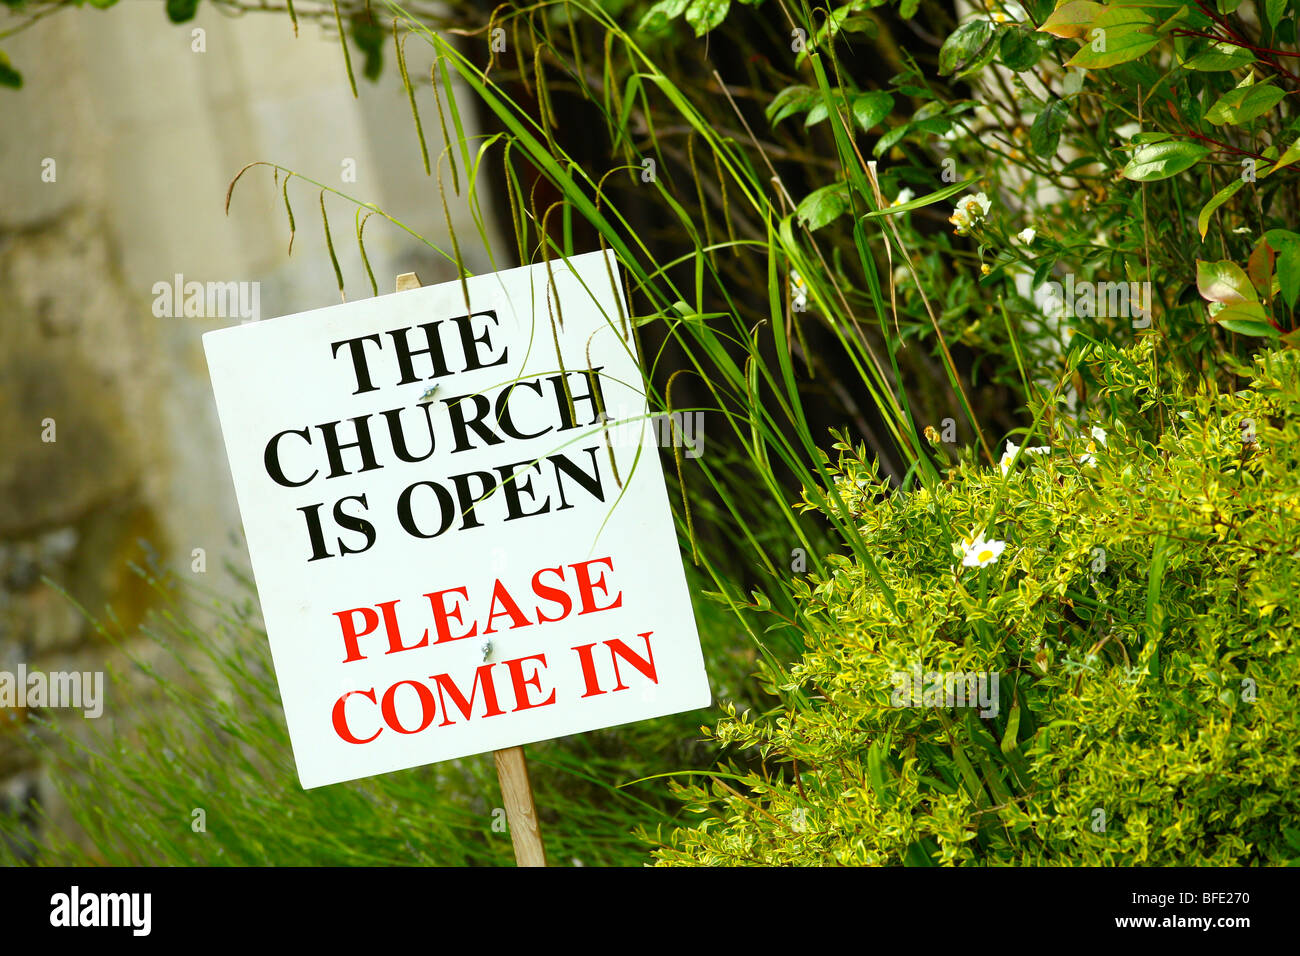 Open sign outside a church - Stock Image